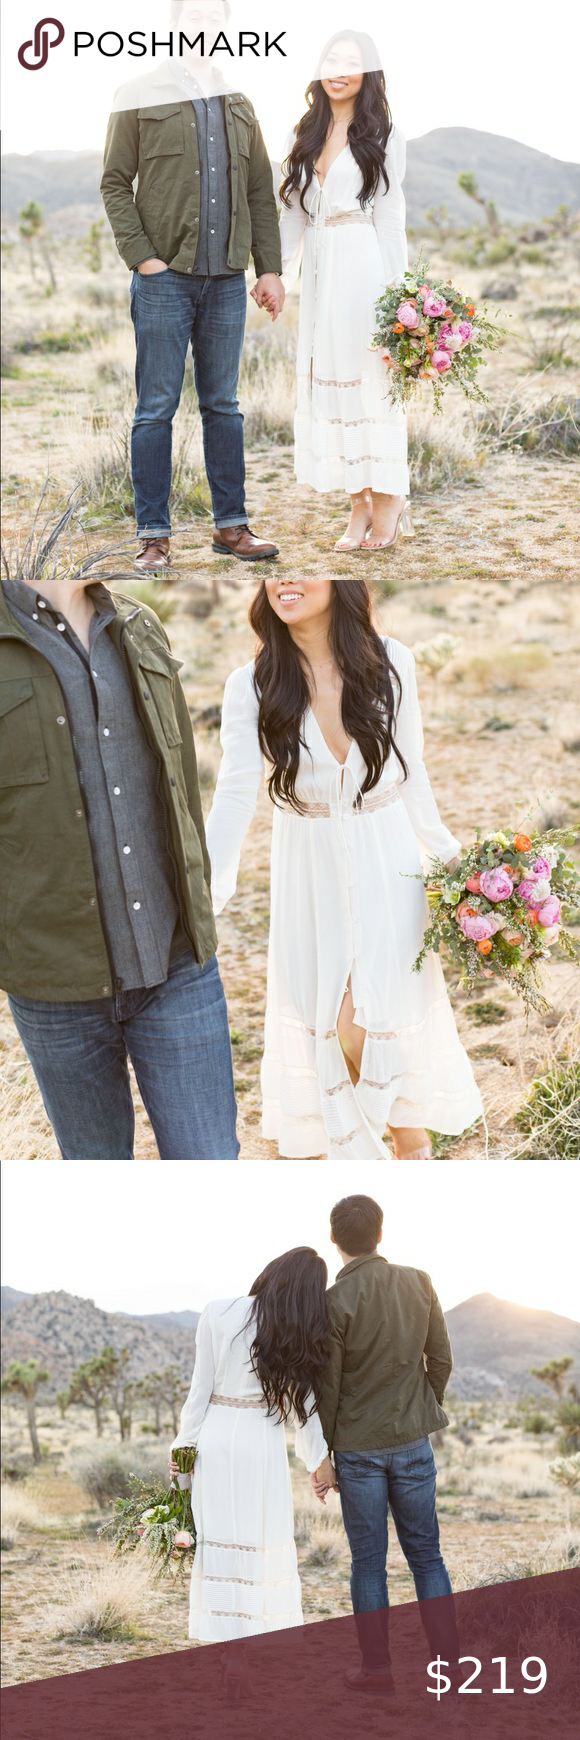 Photo of Reformation dress (Imogen dress, color in ivory) Worn only once for an engagemen…